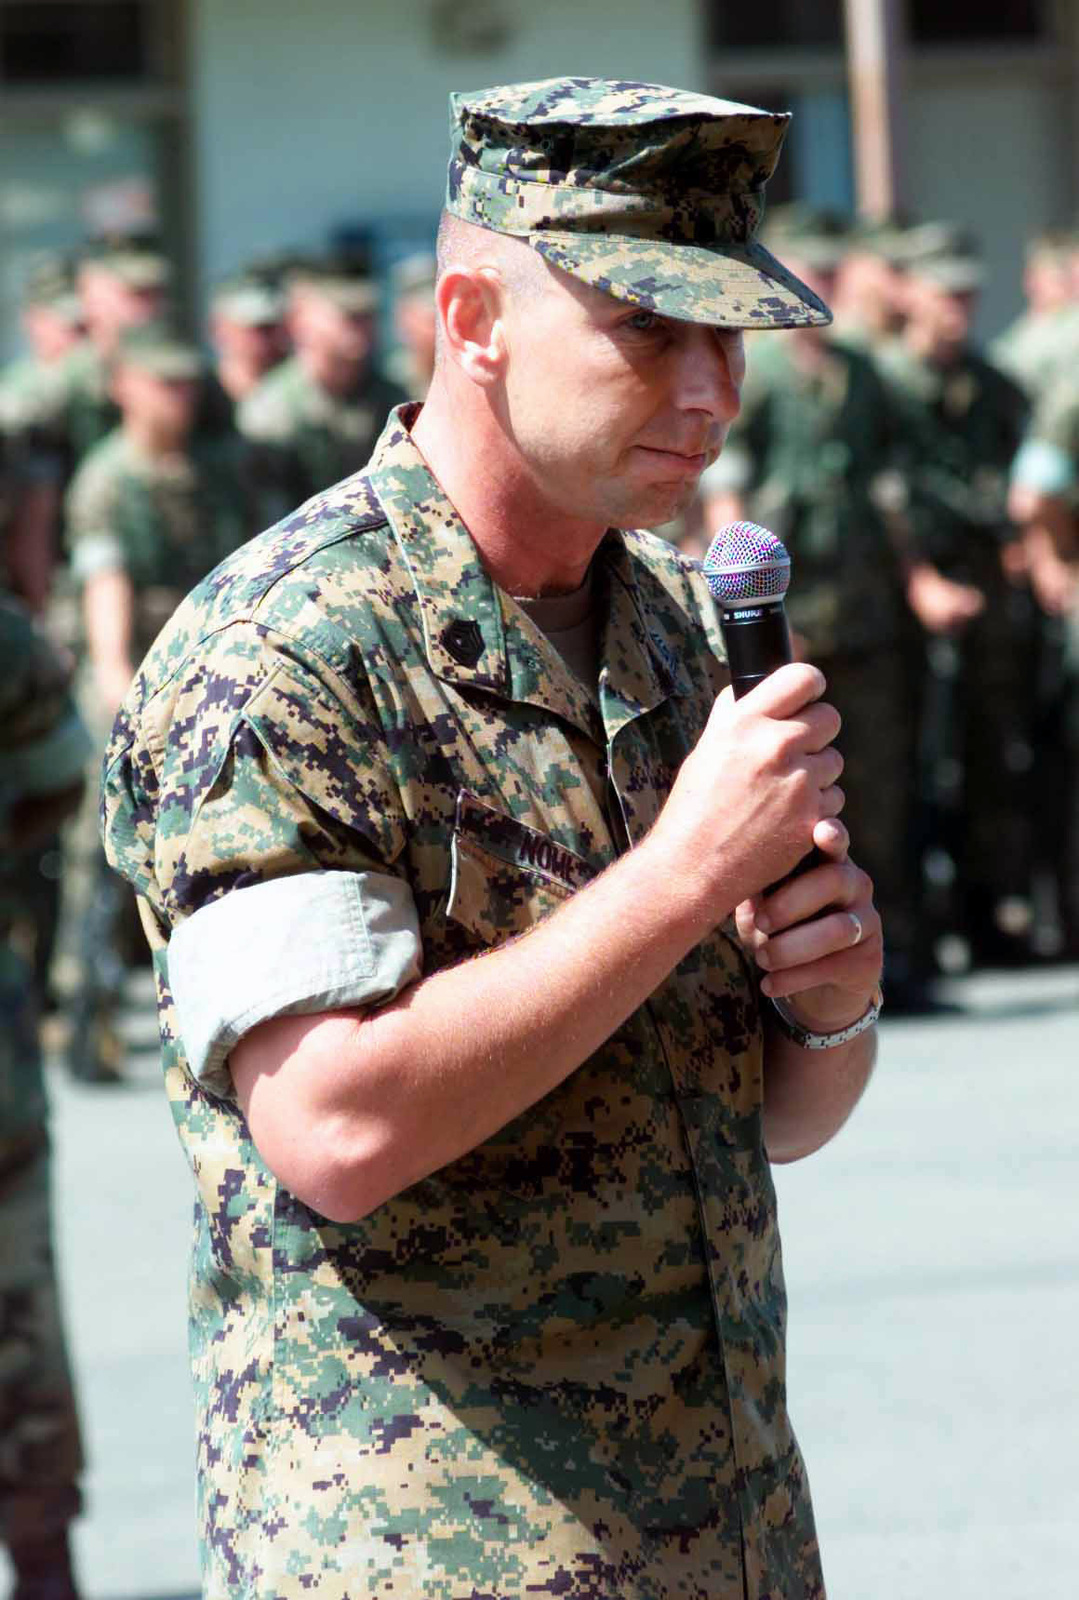 US Marine Corps (USMC) First Sergeant (1SGT) Bryan S. Nohl, 1ST Light Armored Reconnaissance Battalion (1ST LAR), Marine Corps Base (MCB) Camp Pendleton, California (CA), addresses the audience after accepting command during the Sergeant Major Relief and Appointment Ceremony on the 1ST LAR parade deck